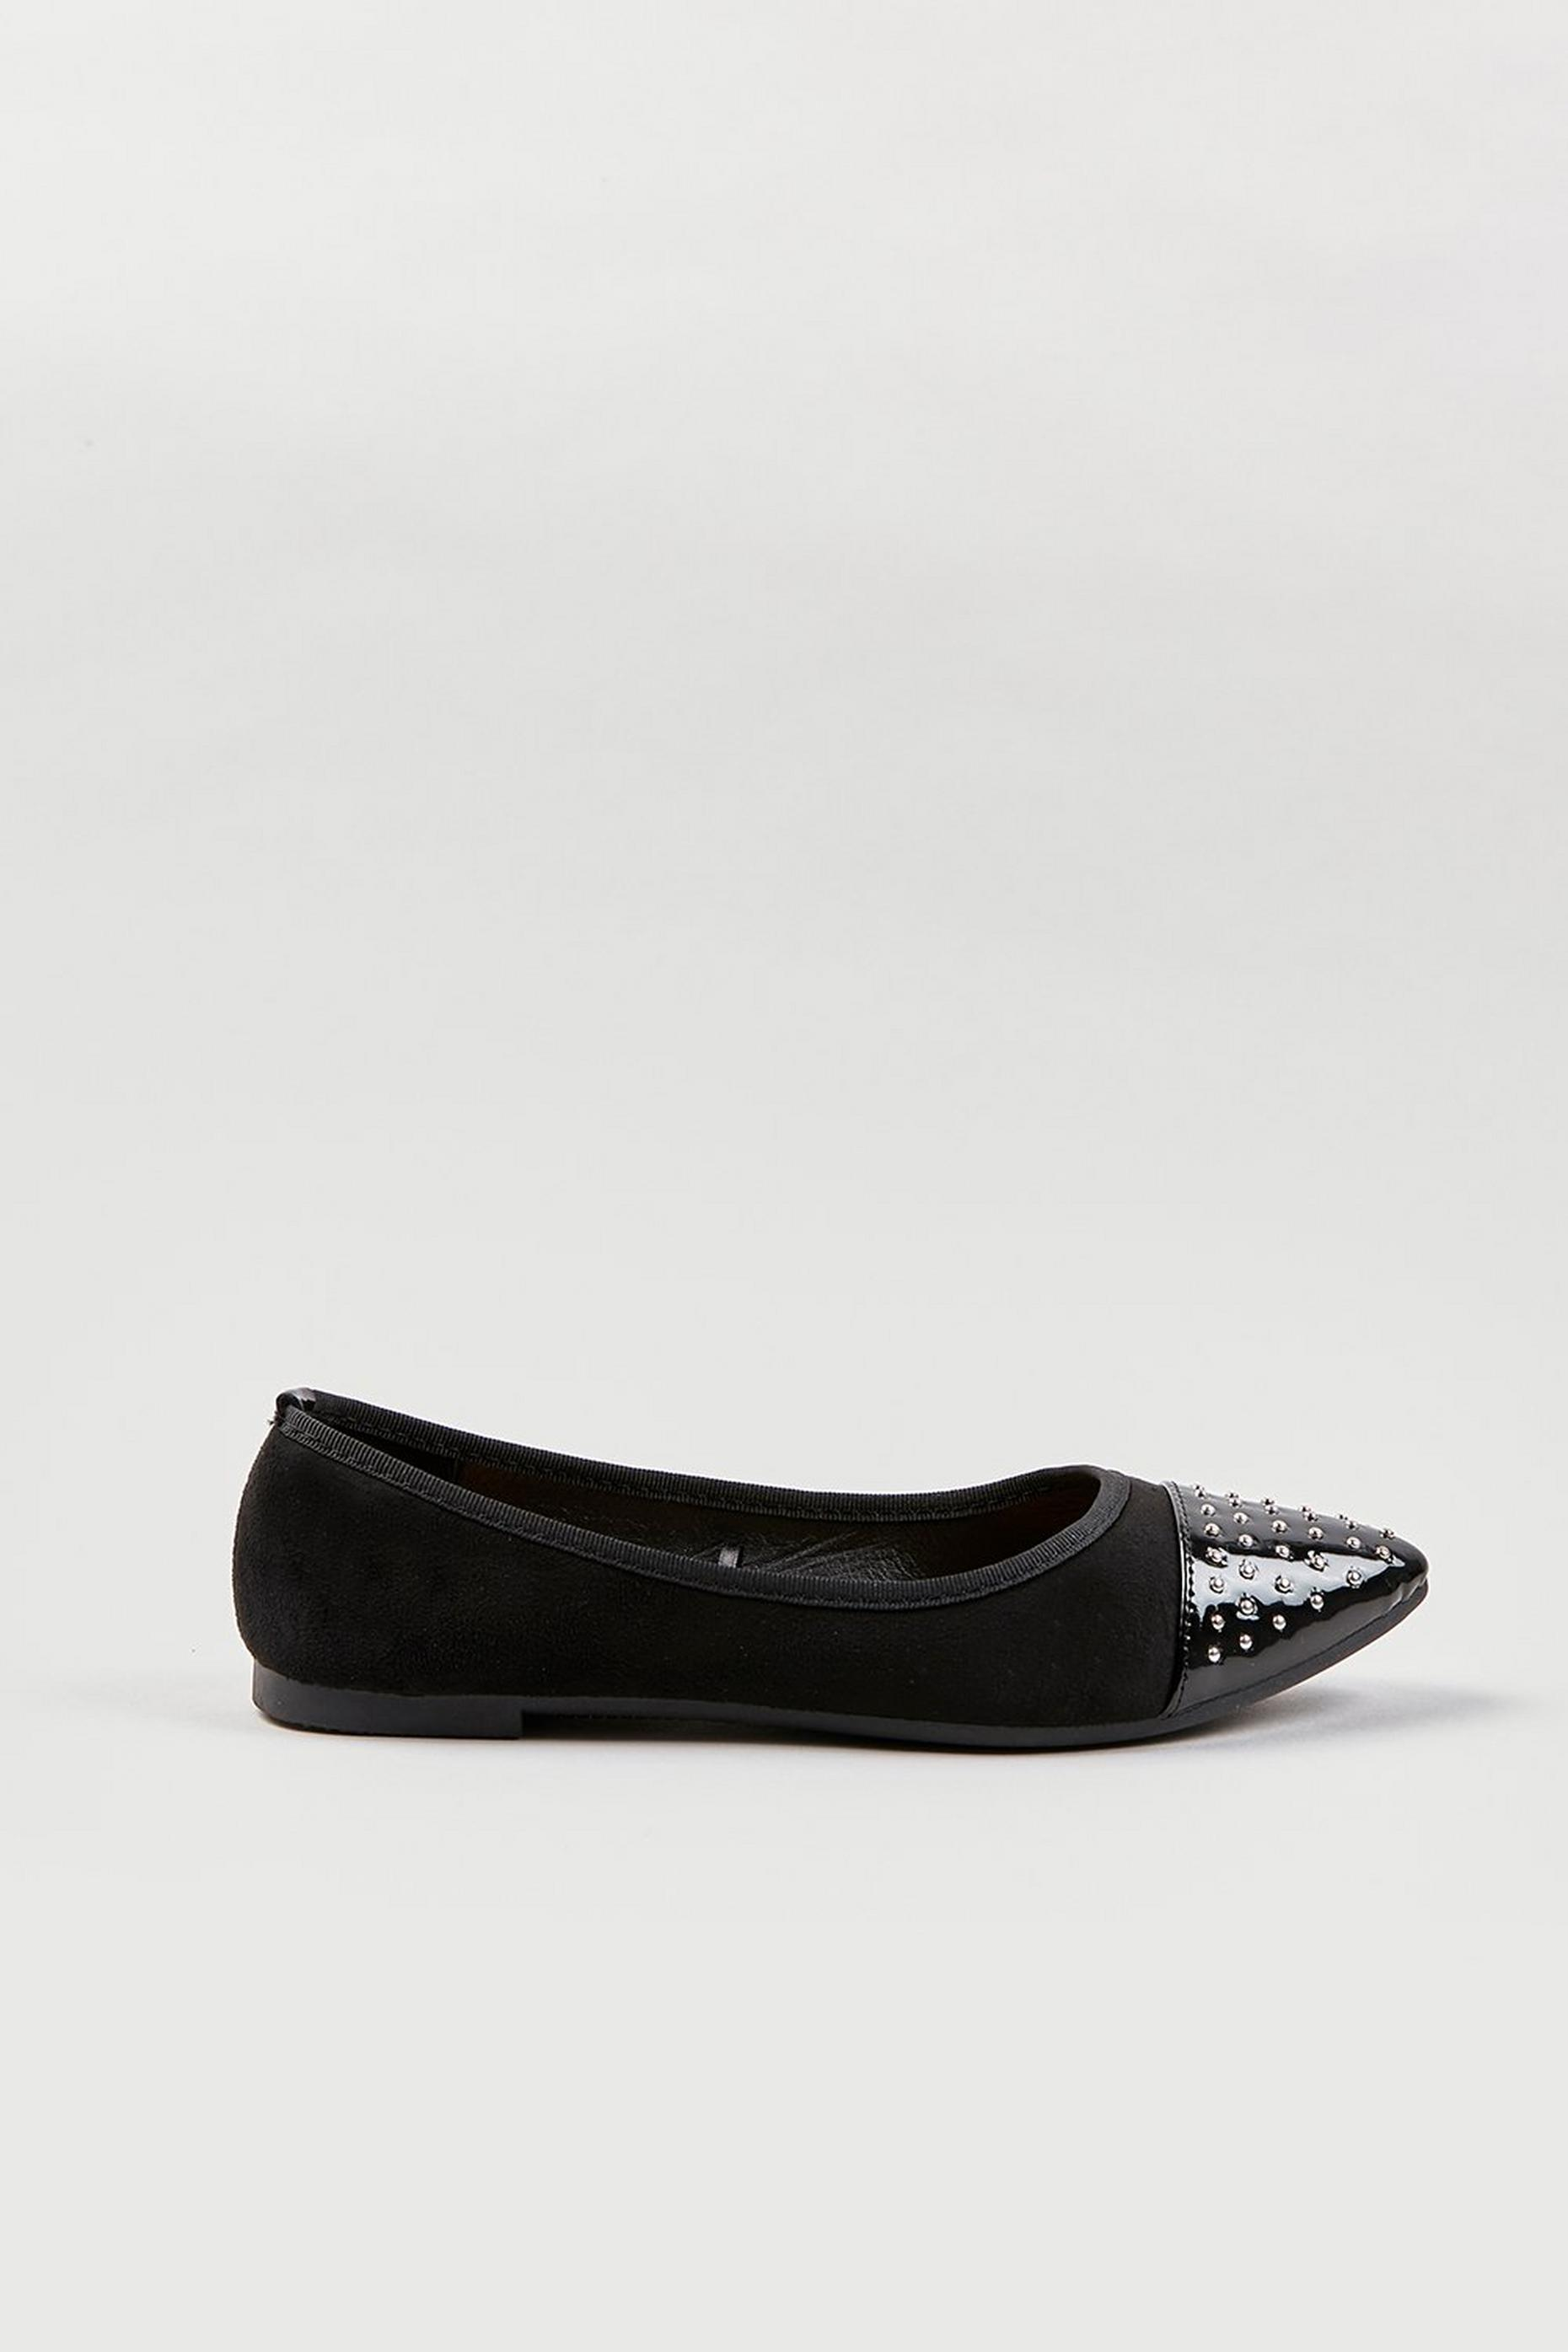 Black Studded Pointed Ballet Pumps